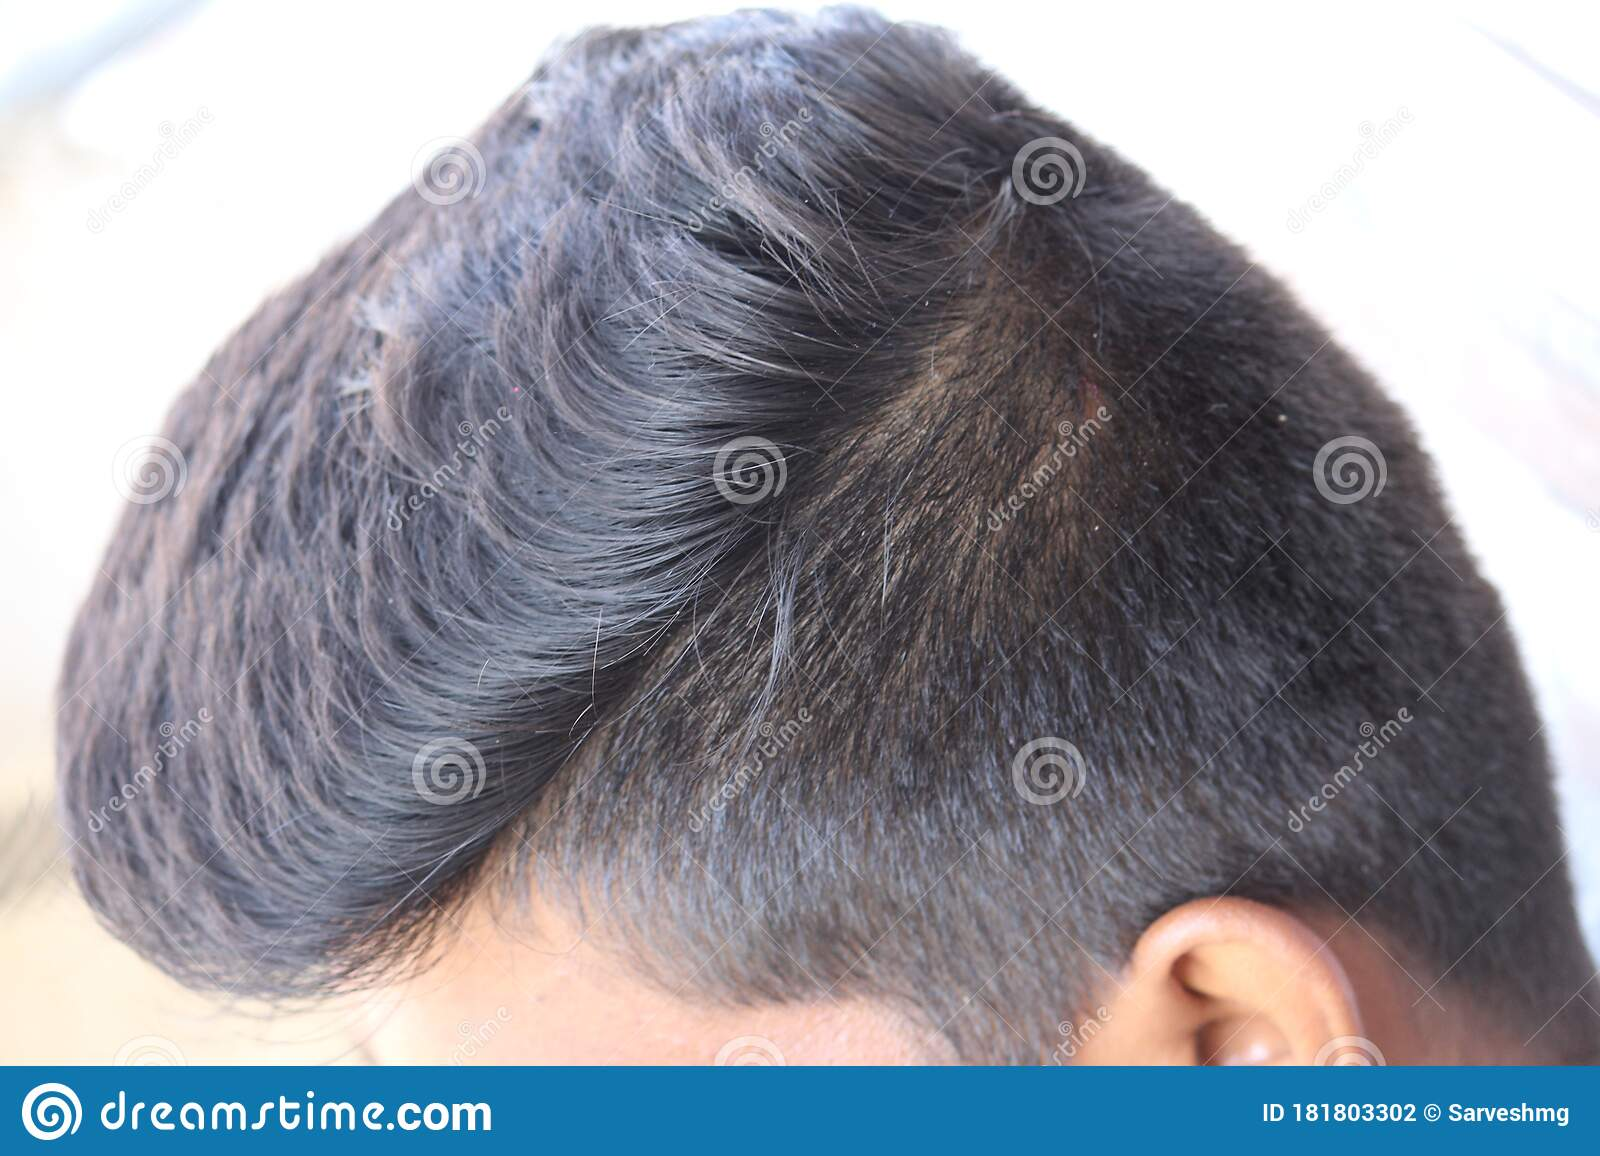 An Indian Man Hair Style In Close Up Beautiful Silky Shine Black Hair Combed And Cleanly Manintained Stock Photo Image Of Maintain Hair 181803302